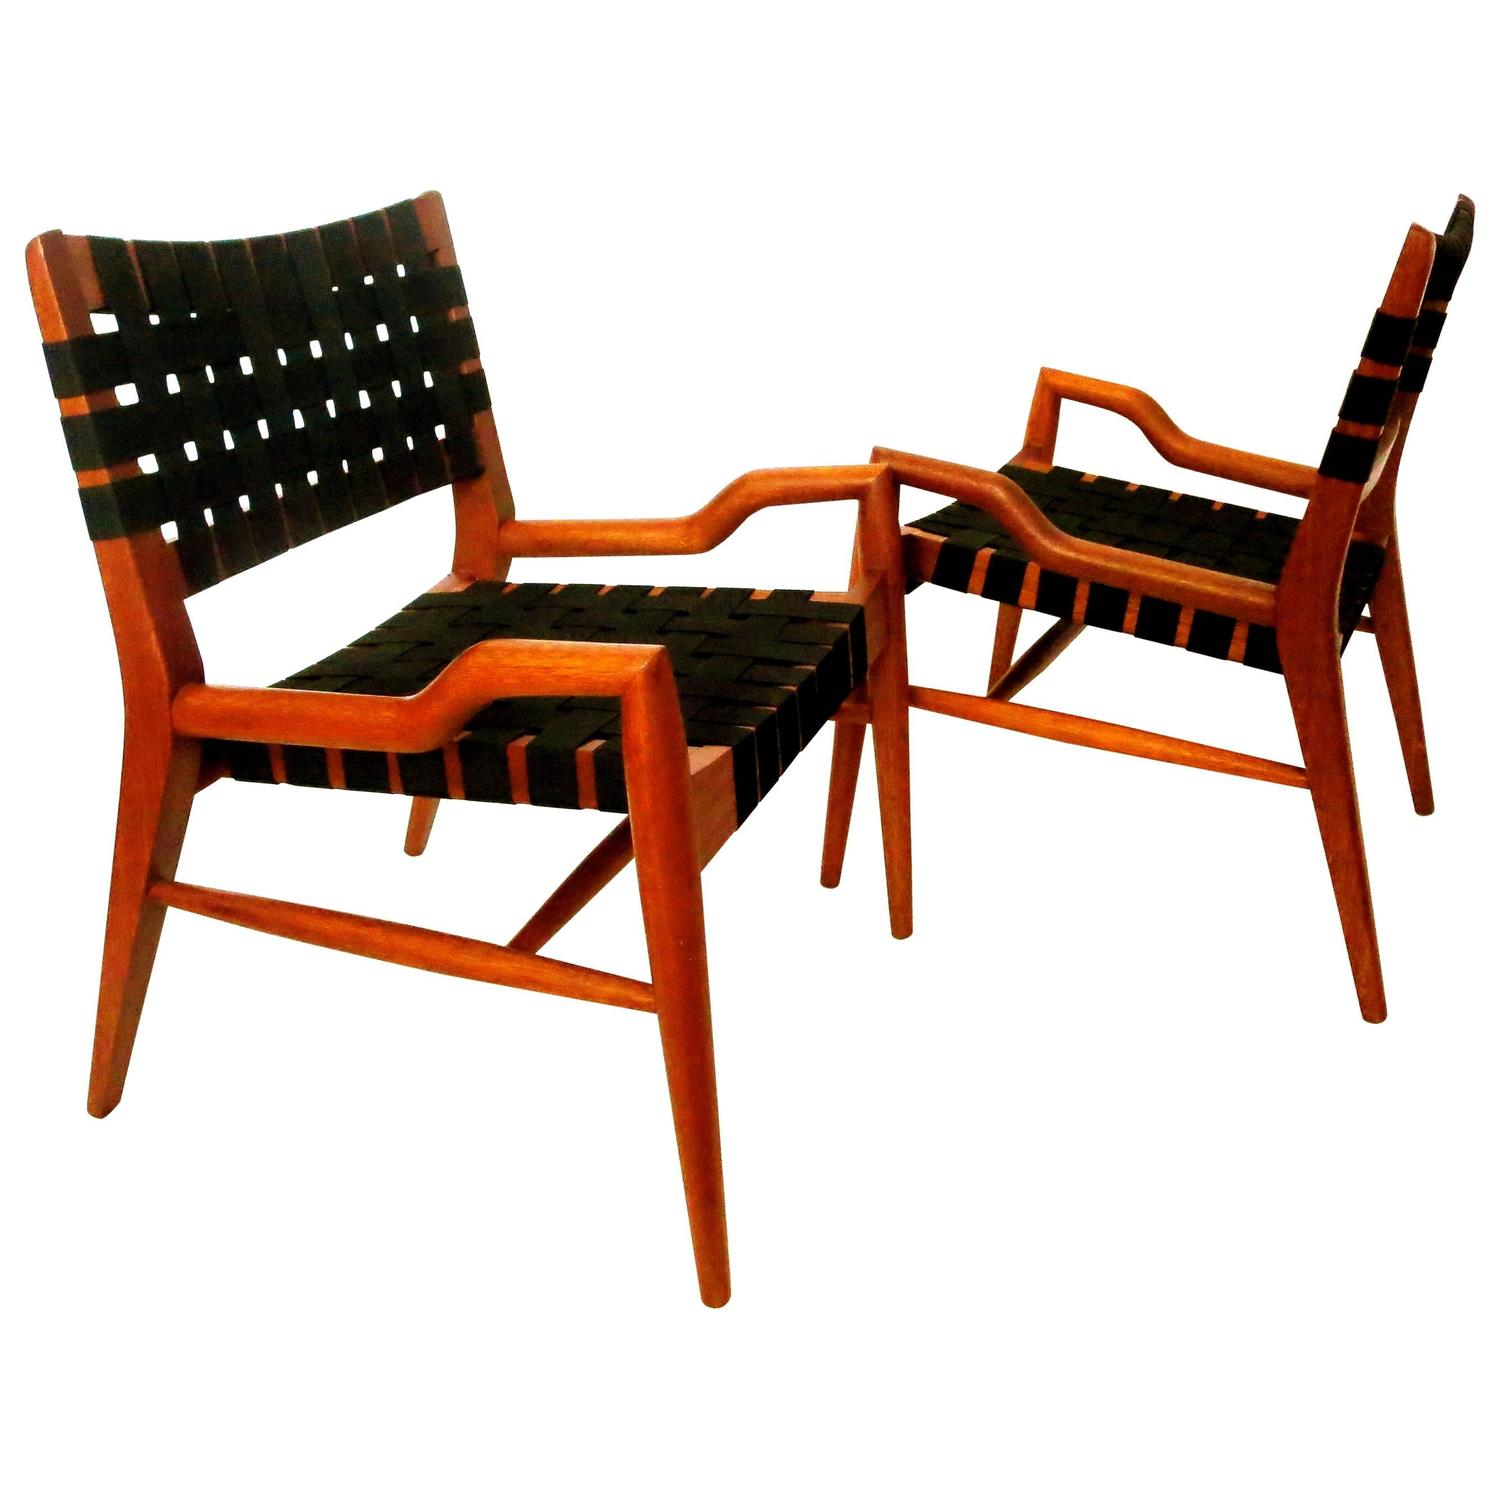 Striking Pair Of Petite Club Chairs By John Keal For Brown